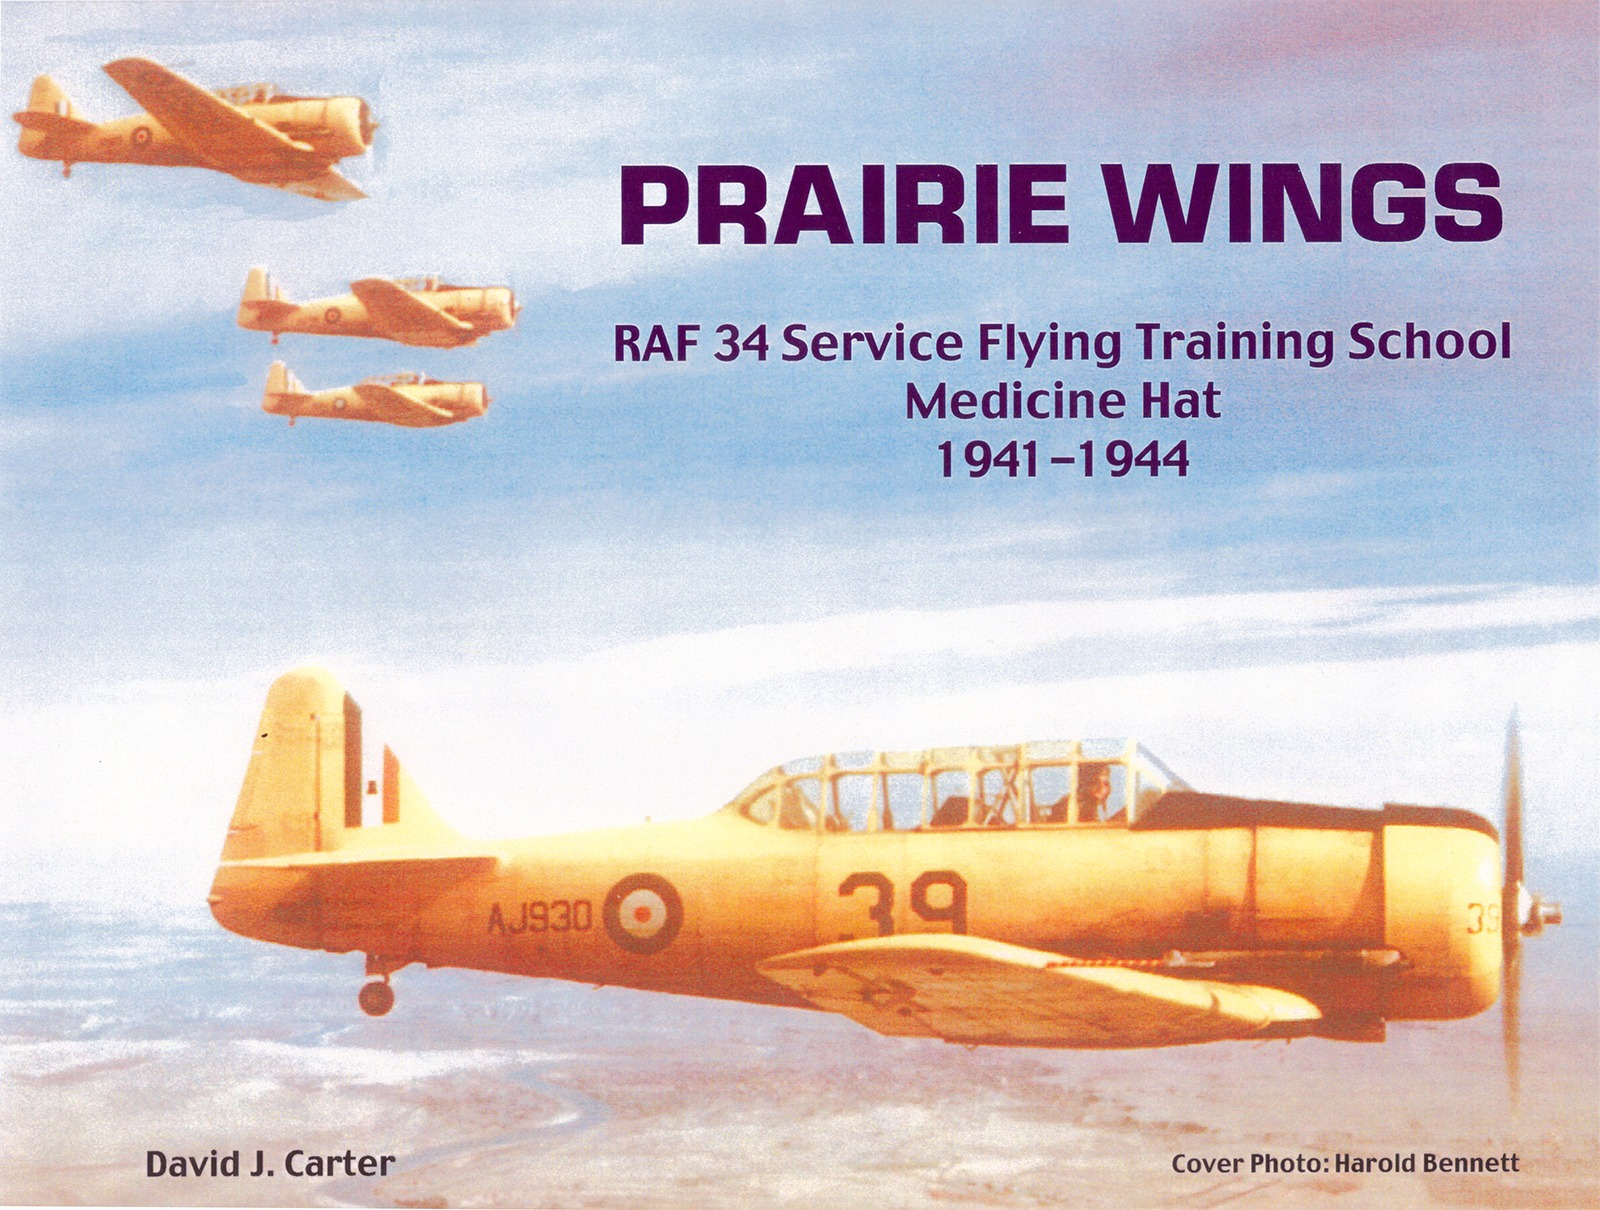 PRAIRIE WINGS - Special Limited Edition